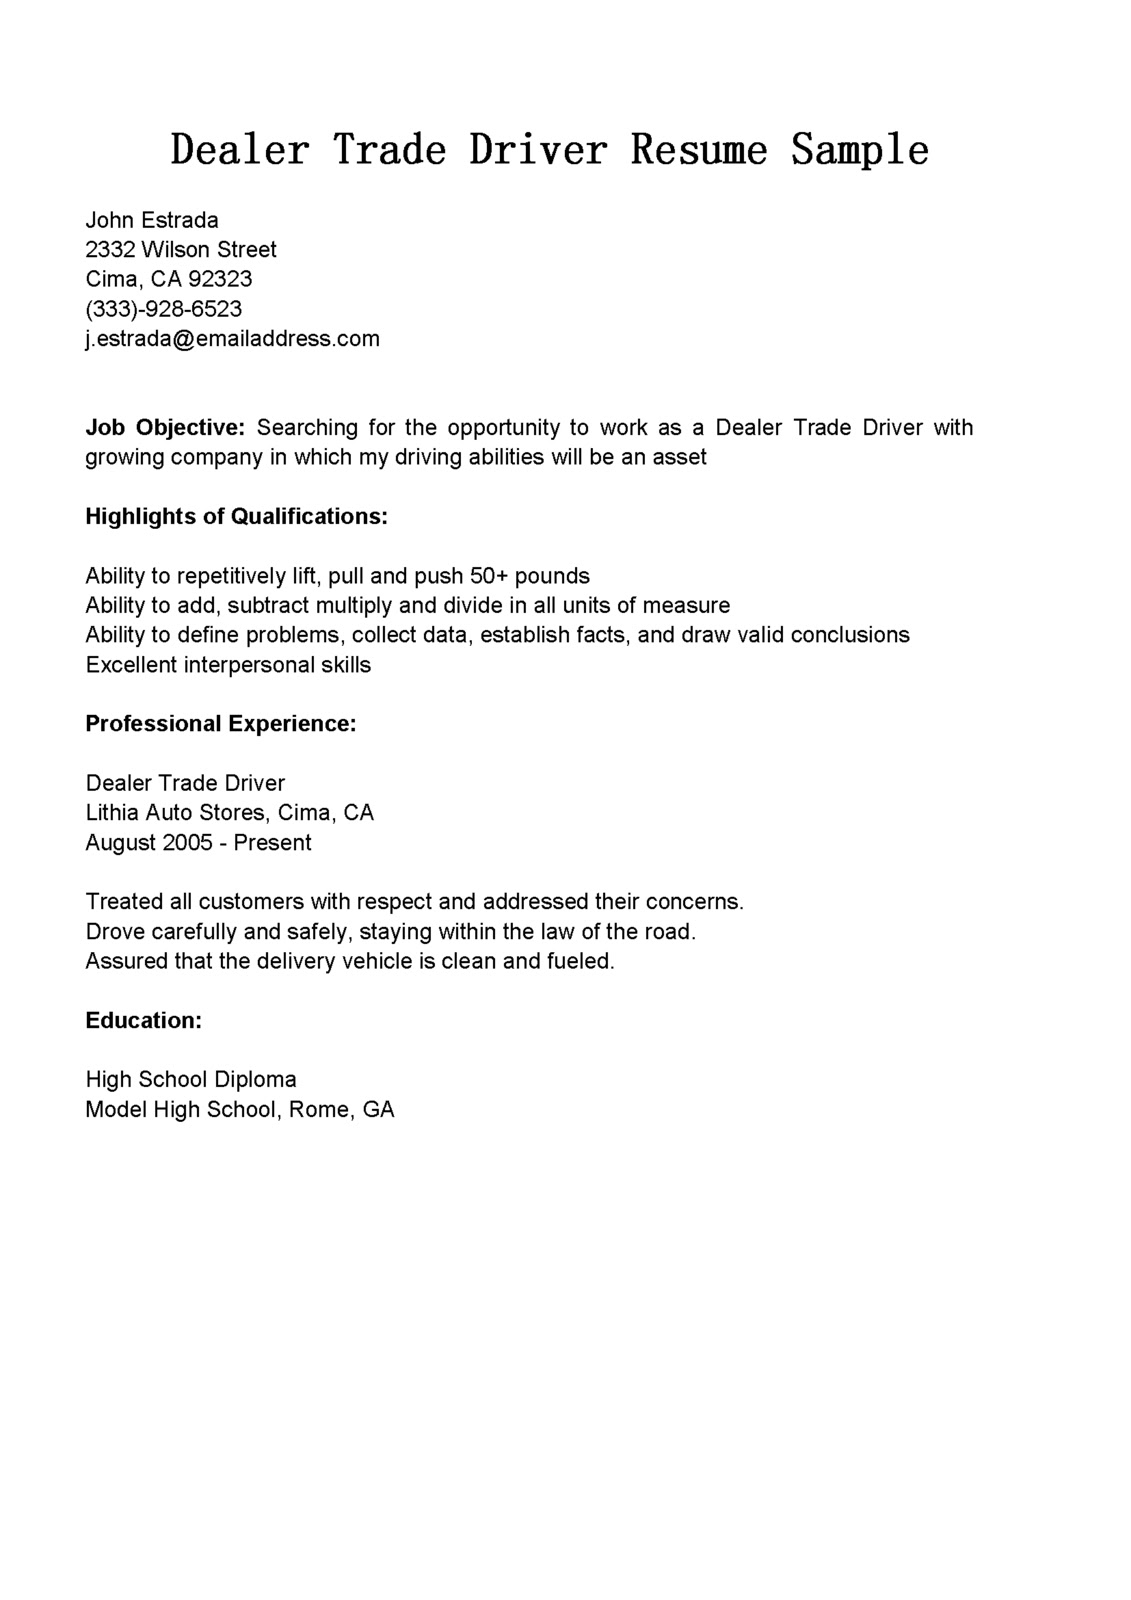 Driver Resumes Dealer Trade Driver Resume Sample